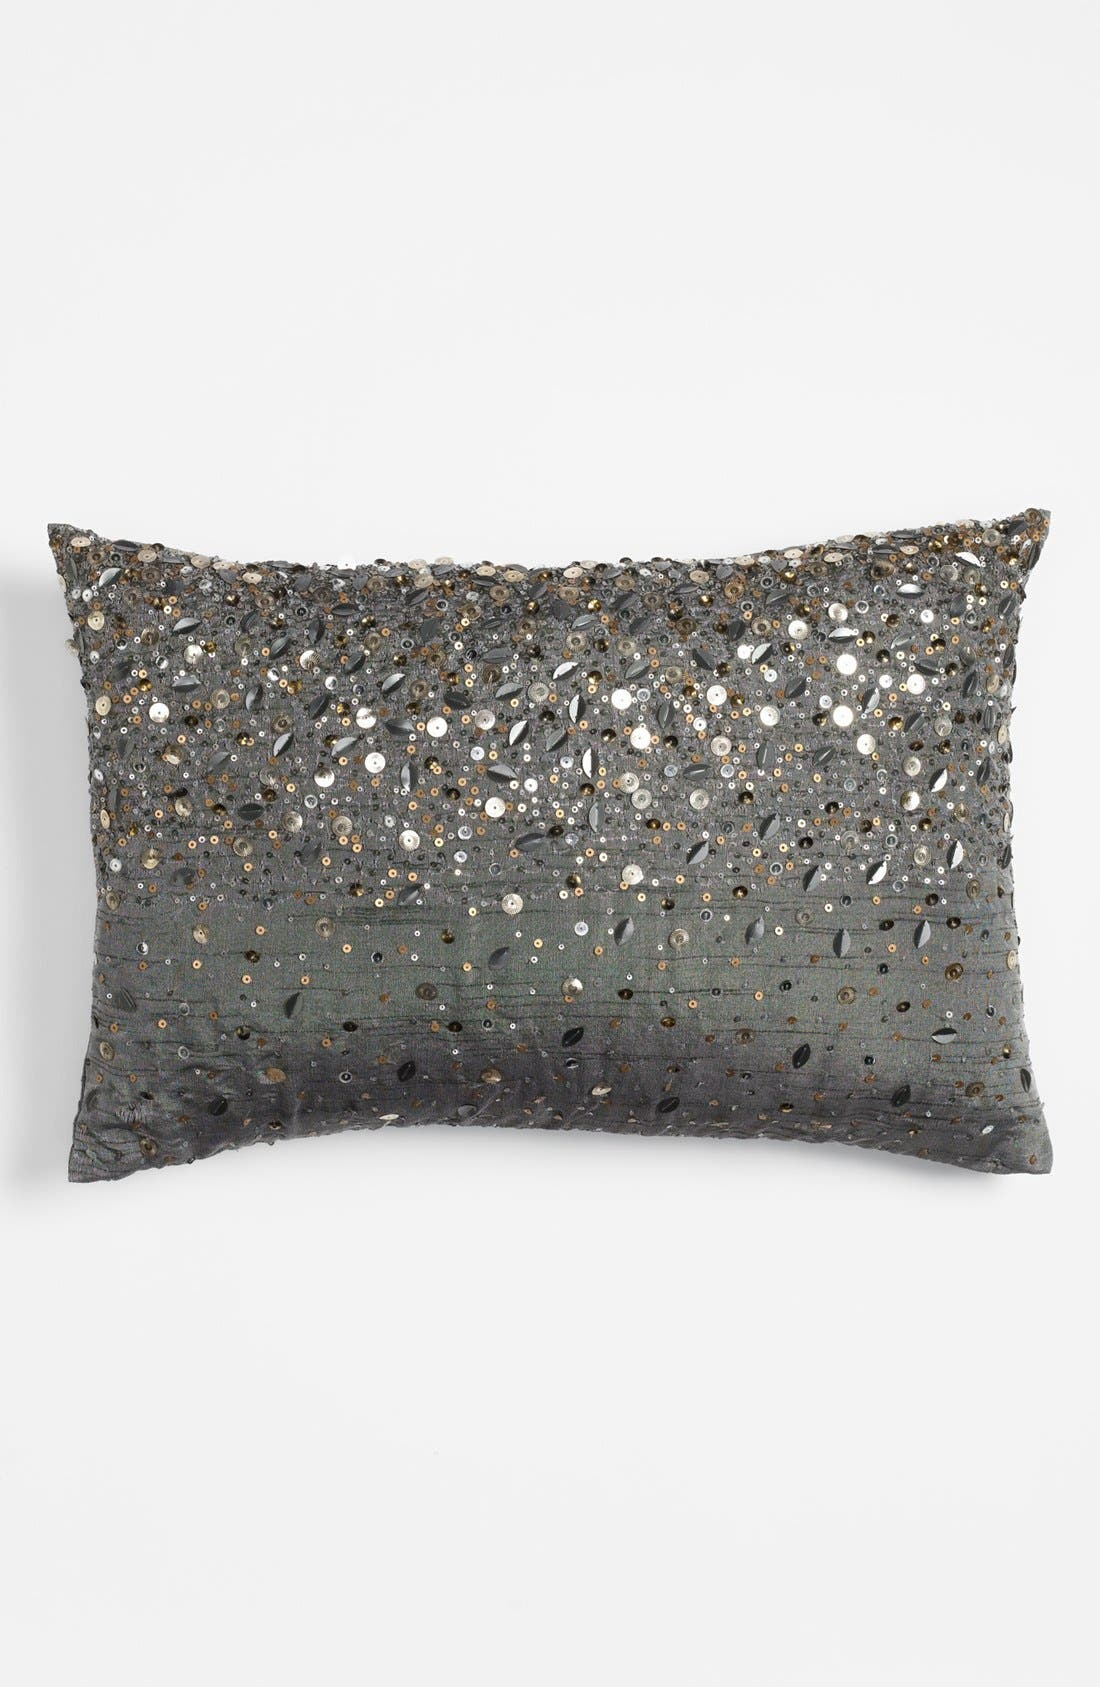 Alternate Image 1 Selected - Nordstrom at Home 'Sequin Spill' Pillow